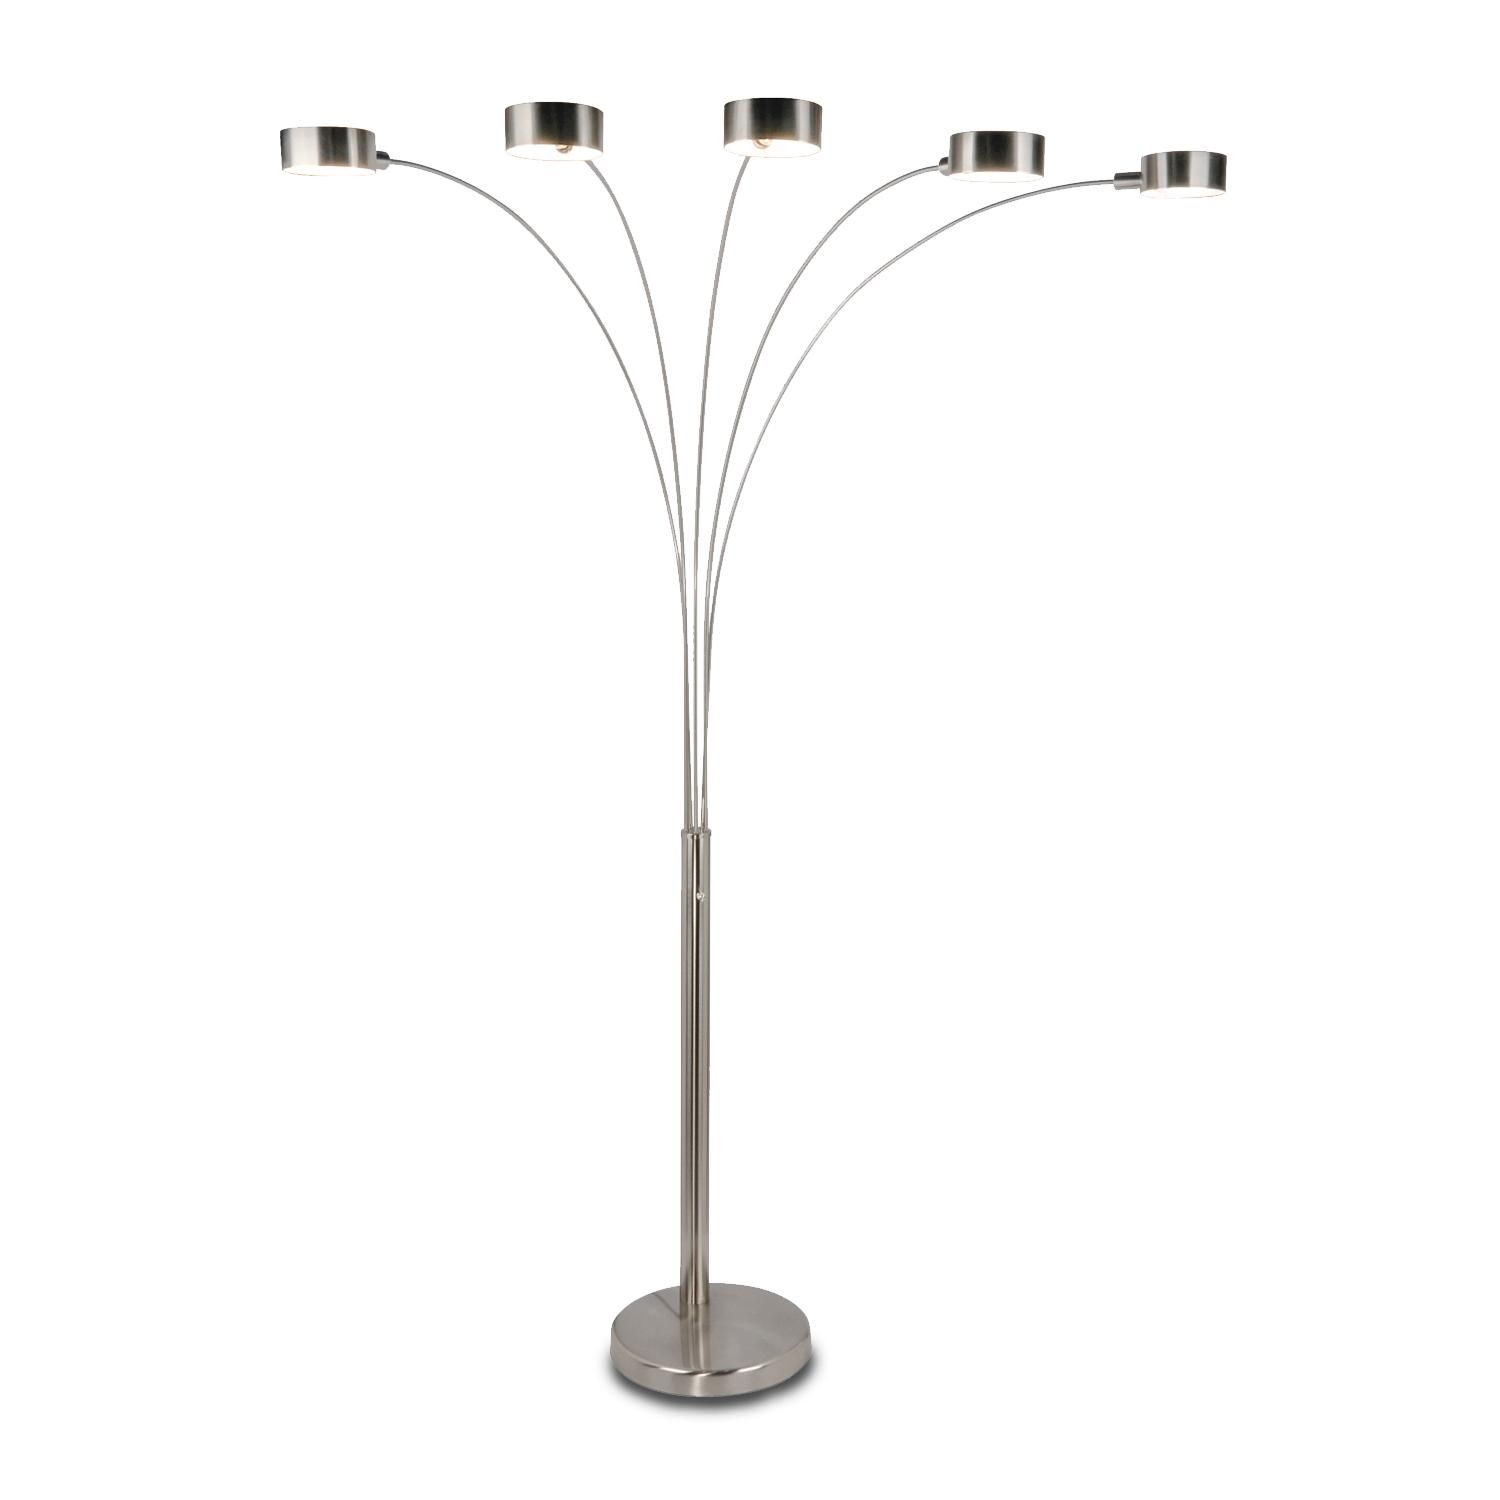 Amazon artiva usa micah modern stylish 5 arc brushed amazon artiva usa micah modern stylish 5 arc brushed steel floor lamp w dimmer switch 360 degree rotatable shades dim options bright aloadofball Image collections